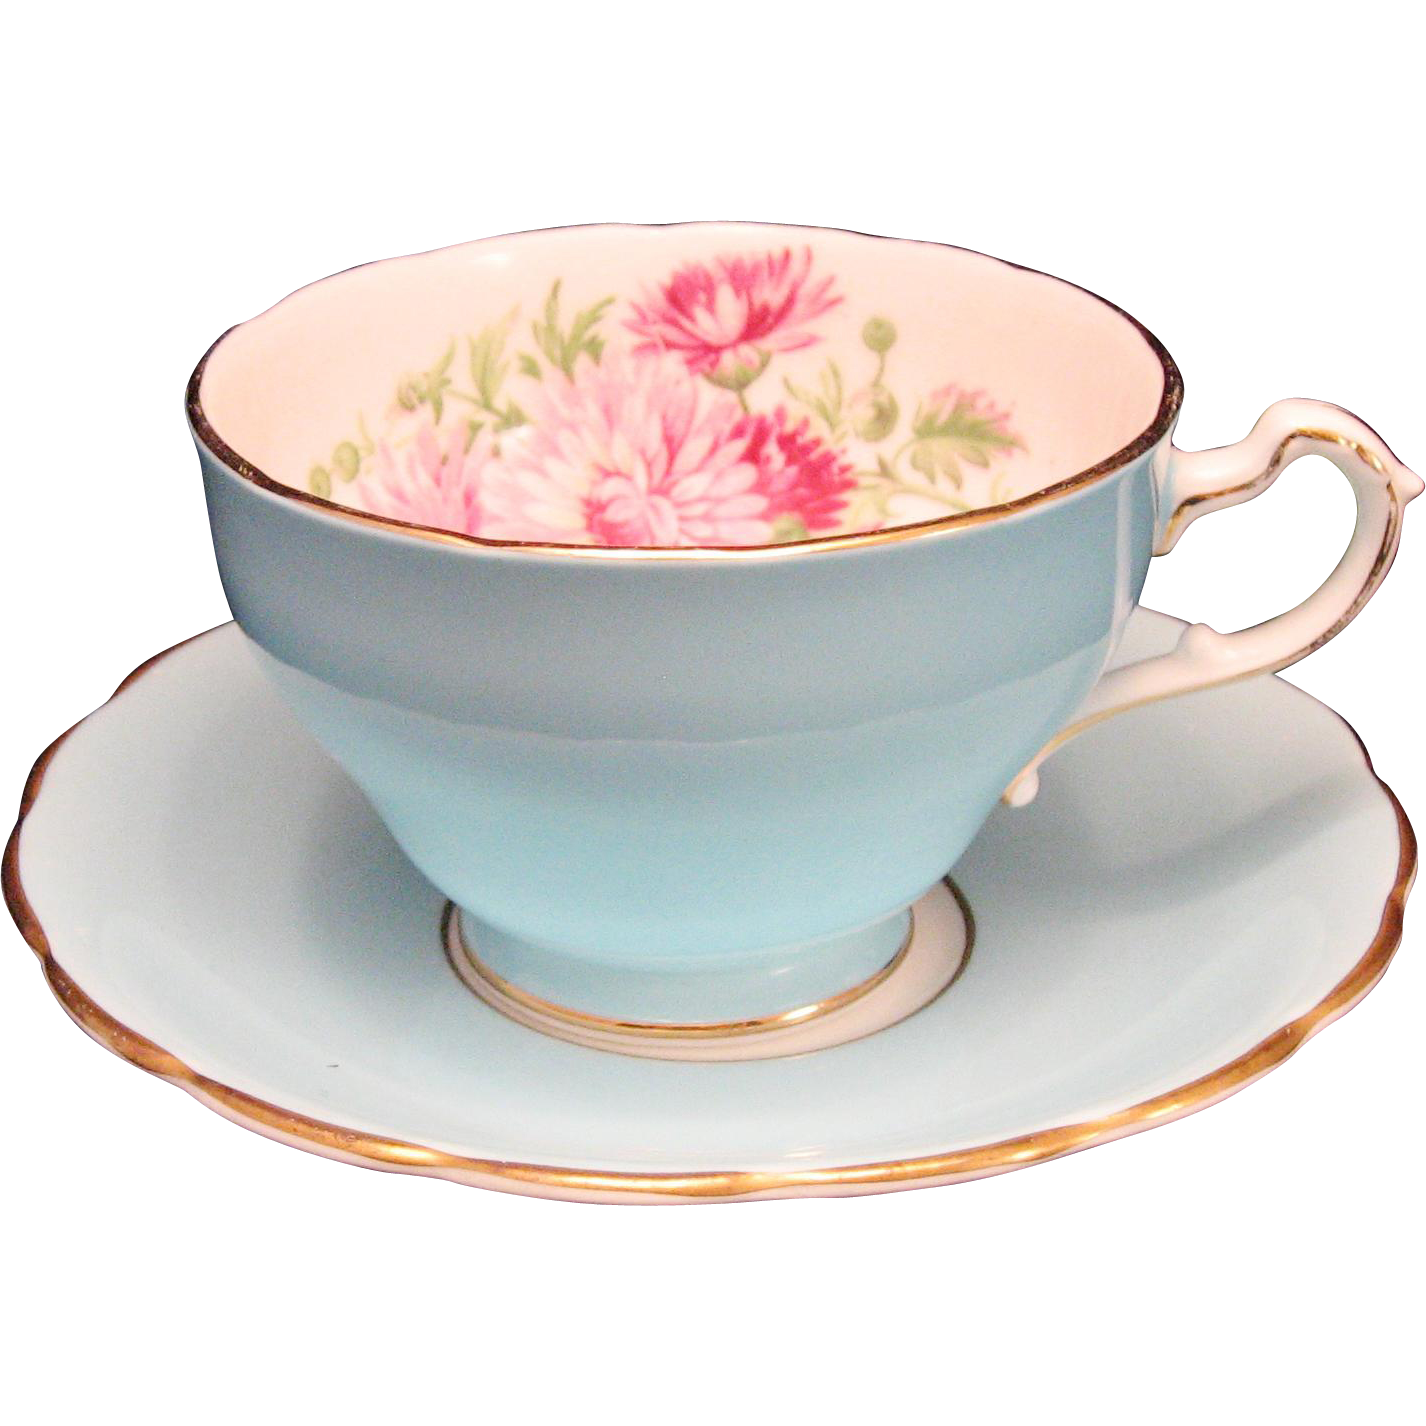 Chinese tea cup clipart vector royalty free Saucer Tableware Porcelain Bone china Teacup - chinese tea png ... vector royalty free